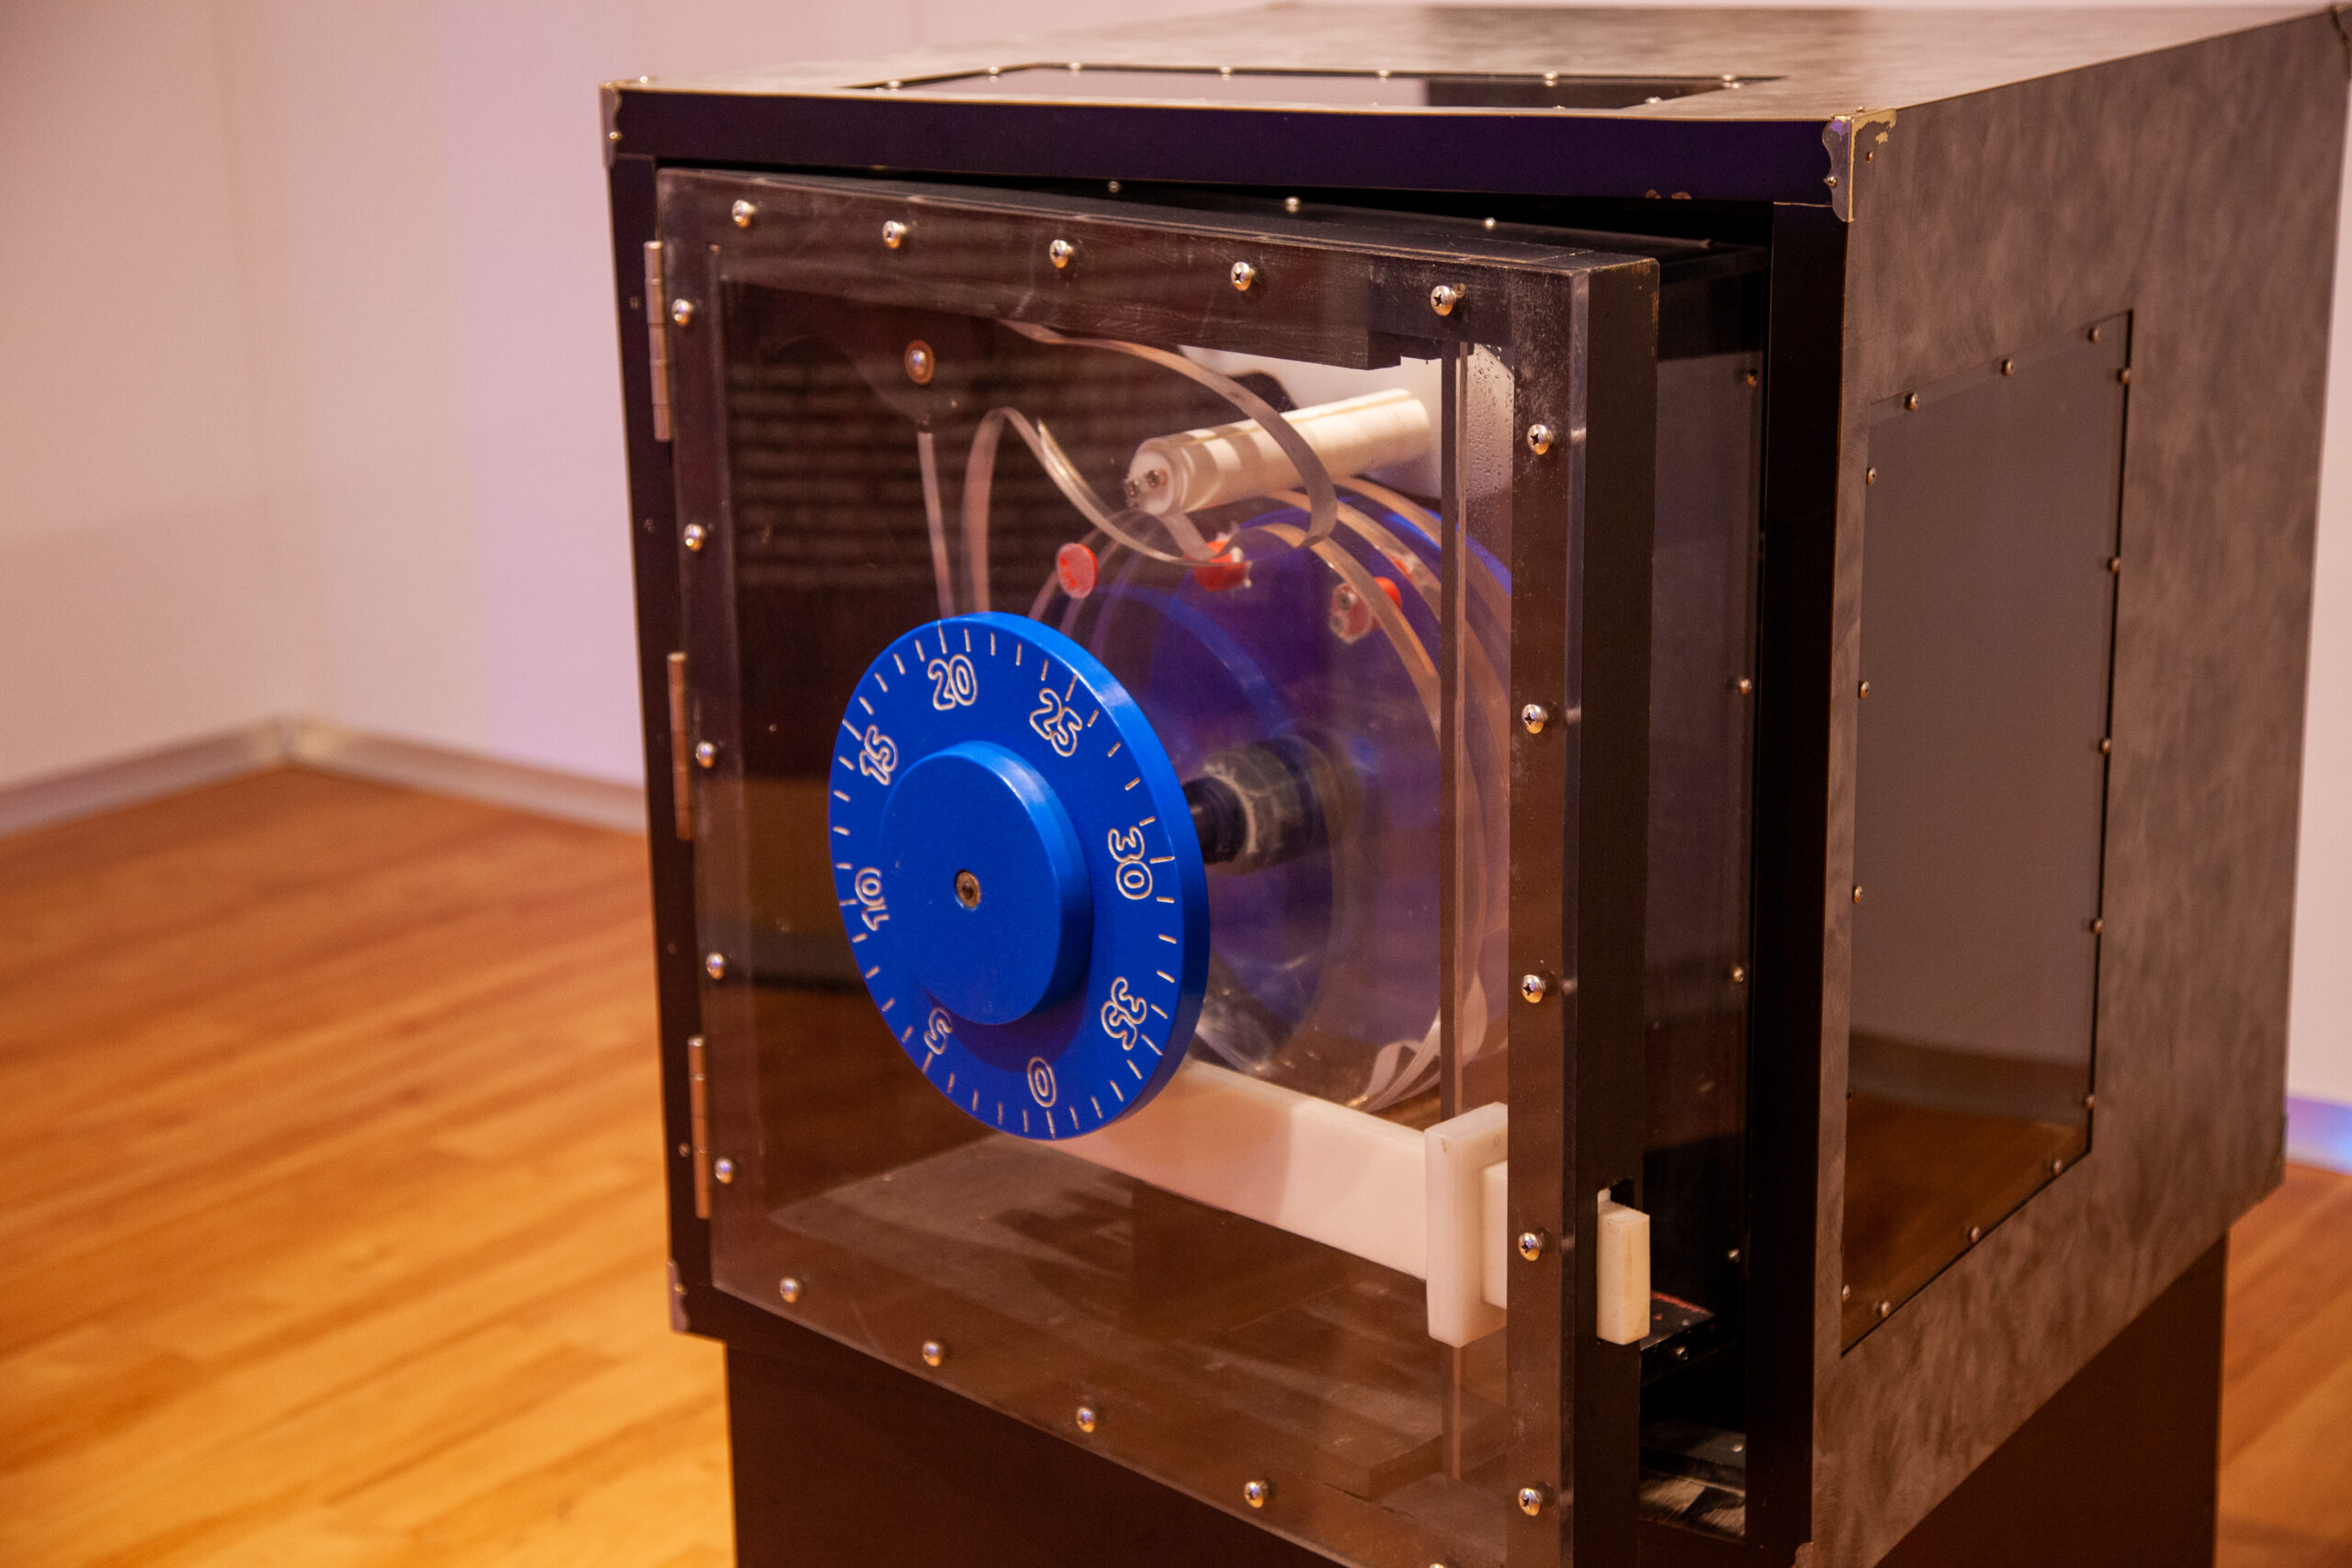 Learn how the inner workings of a safe operates with this unique see-through safe exhibit.